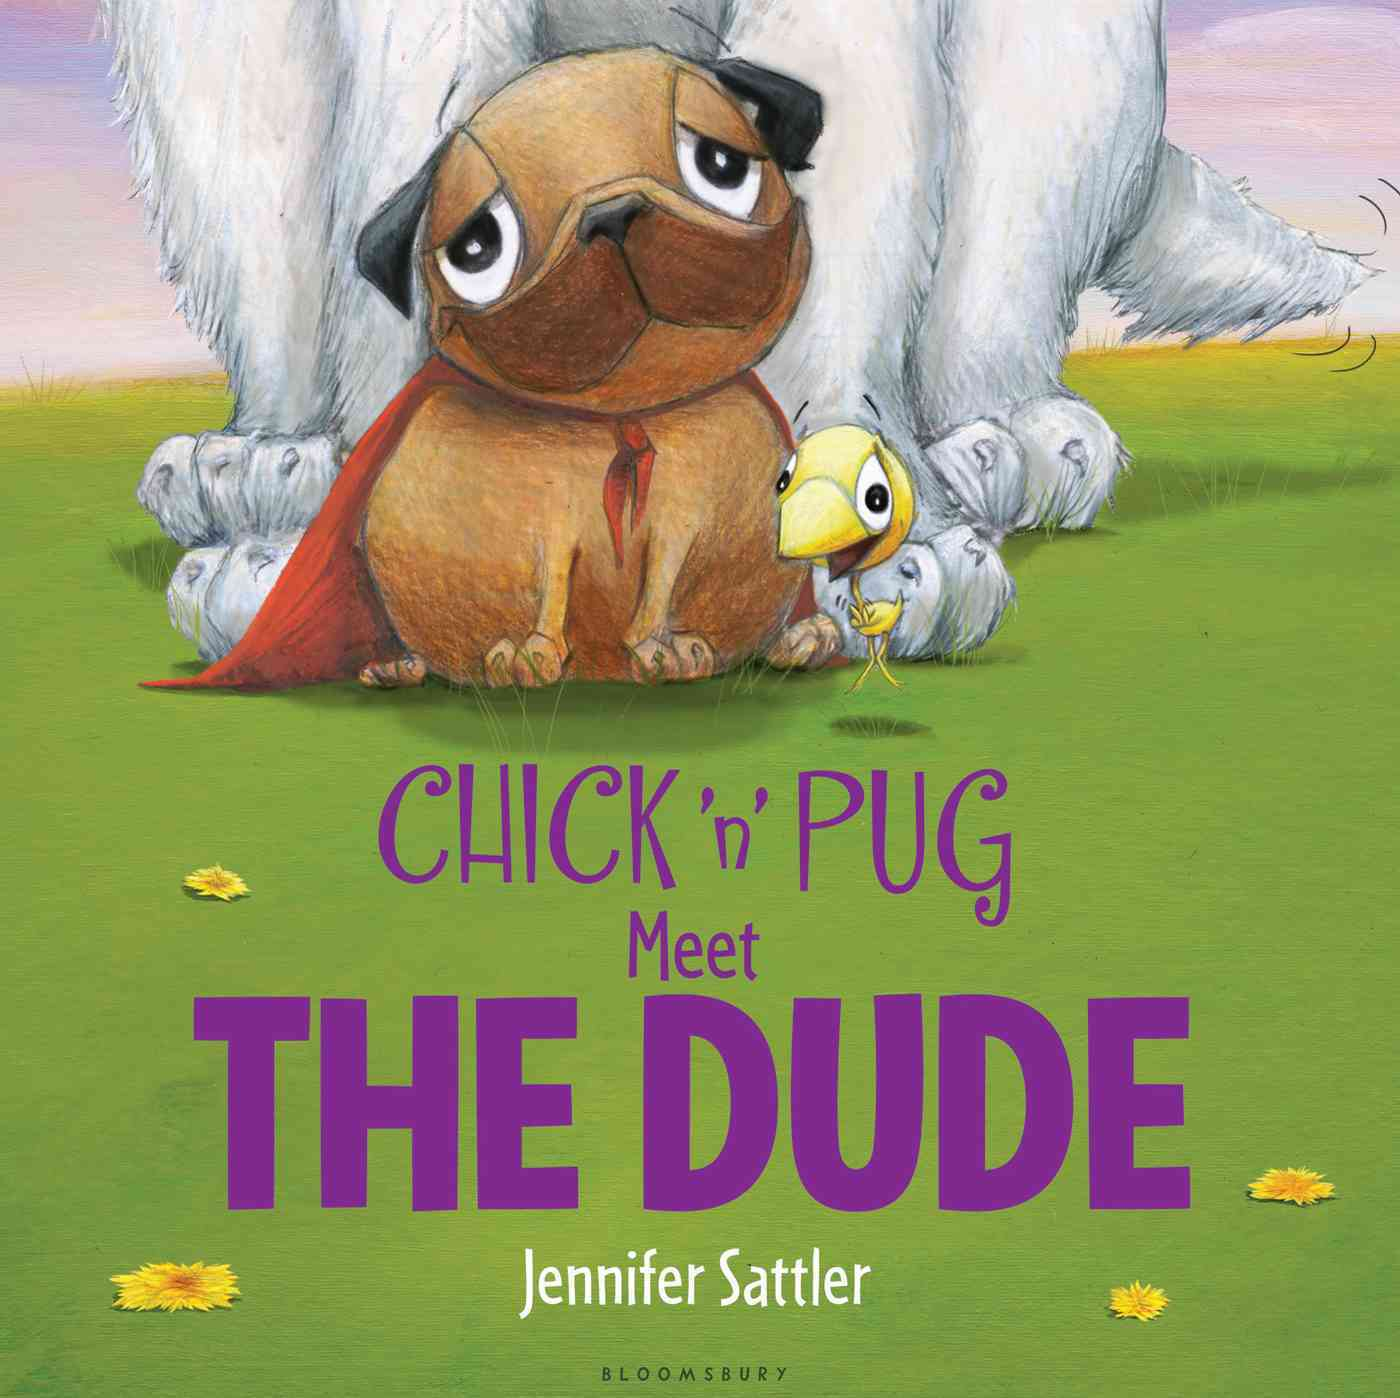 Chick 'n' Pug Meet the Dude By Sattler, Jennifer